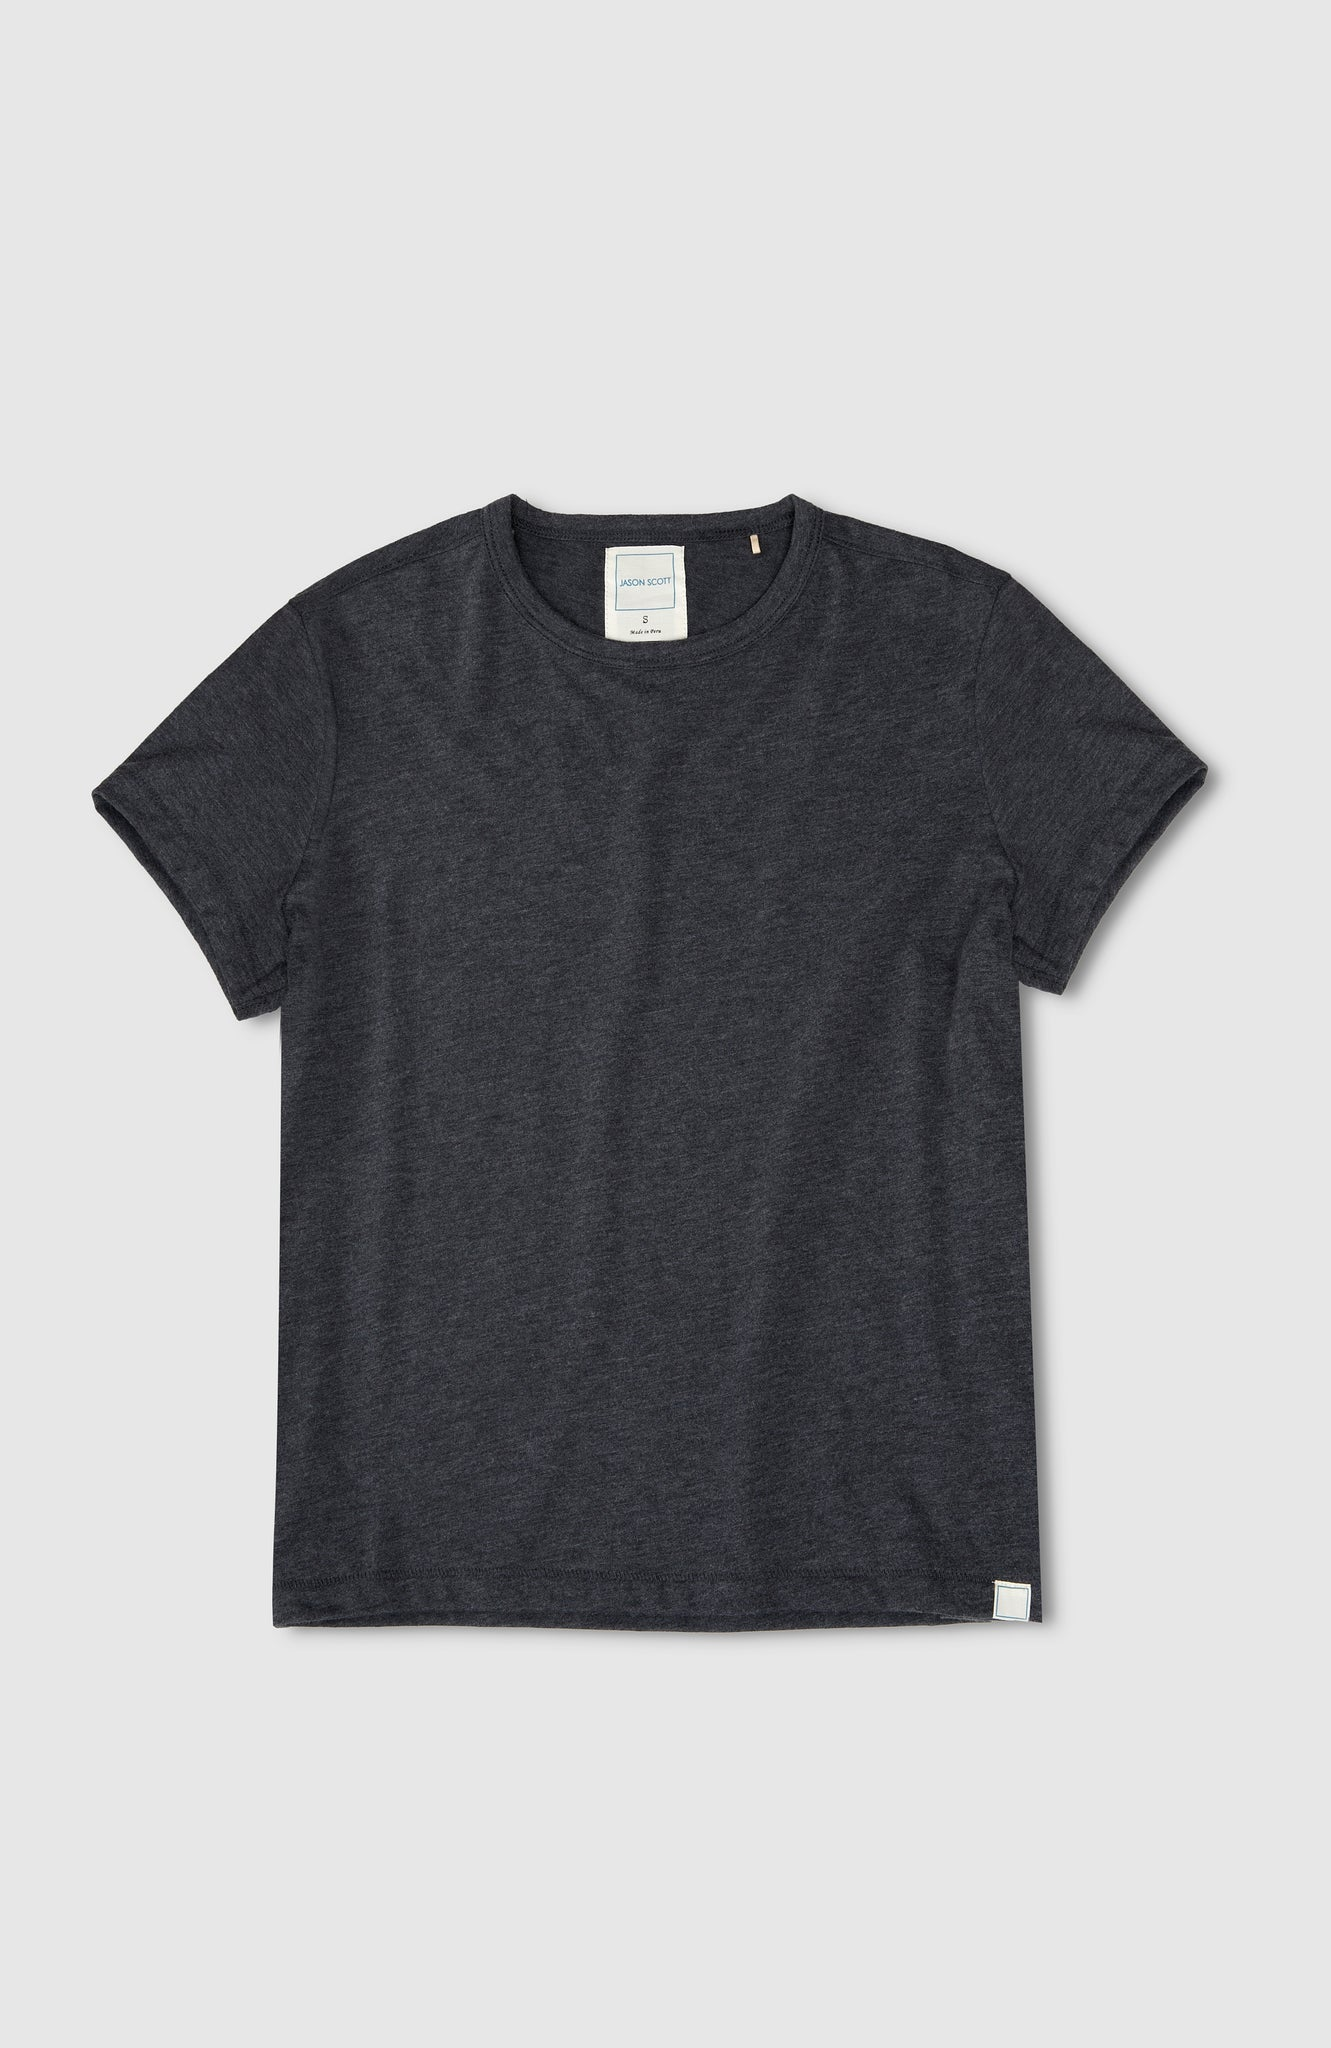 Shrunken Tee - Heather Charcoal